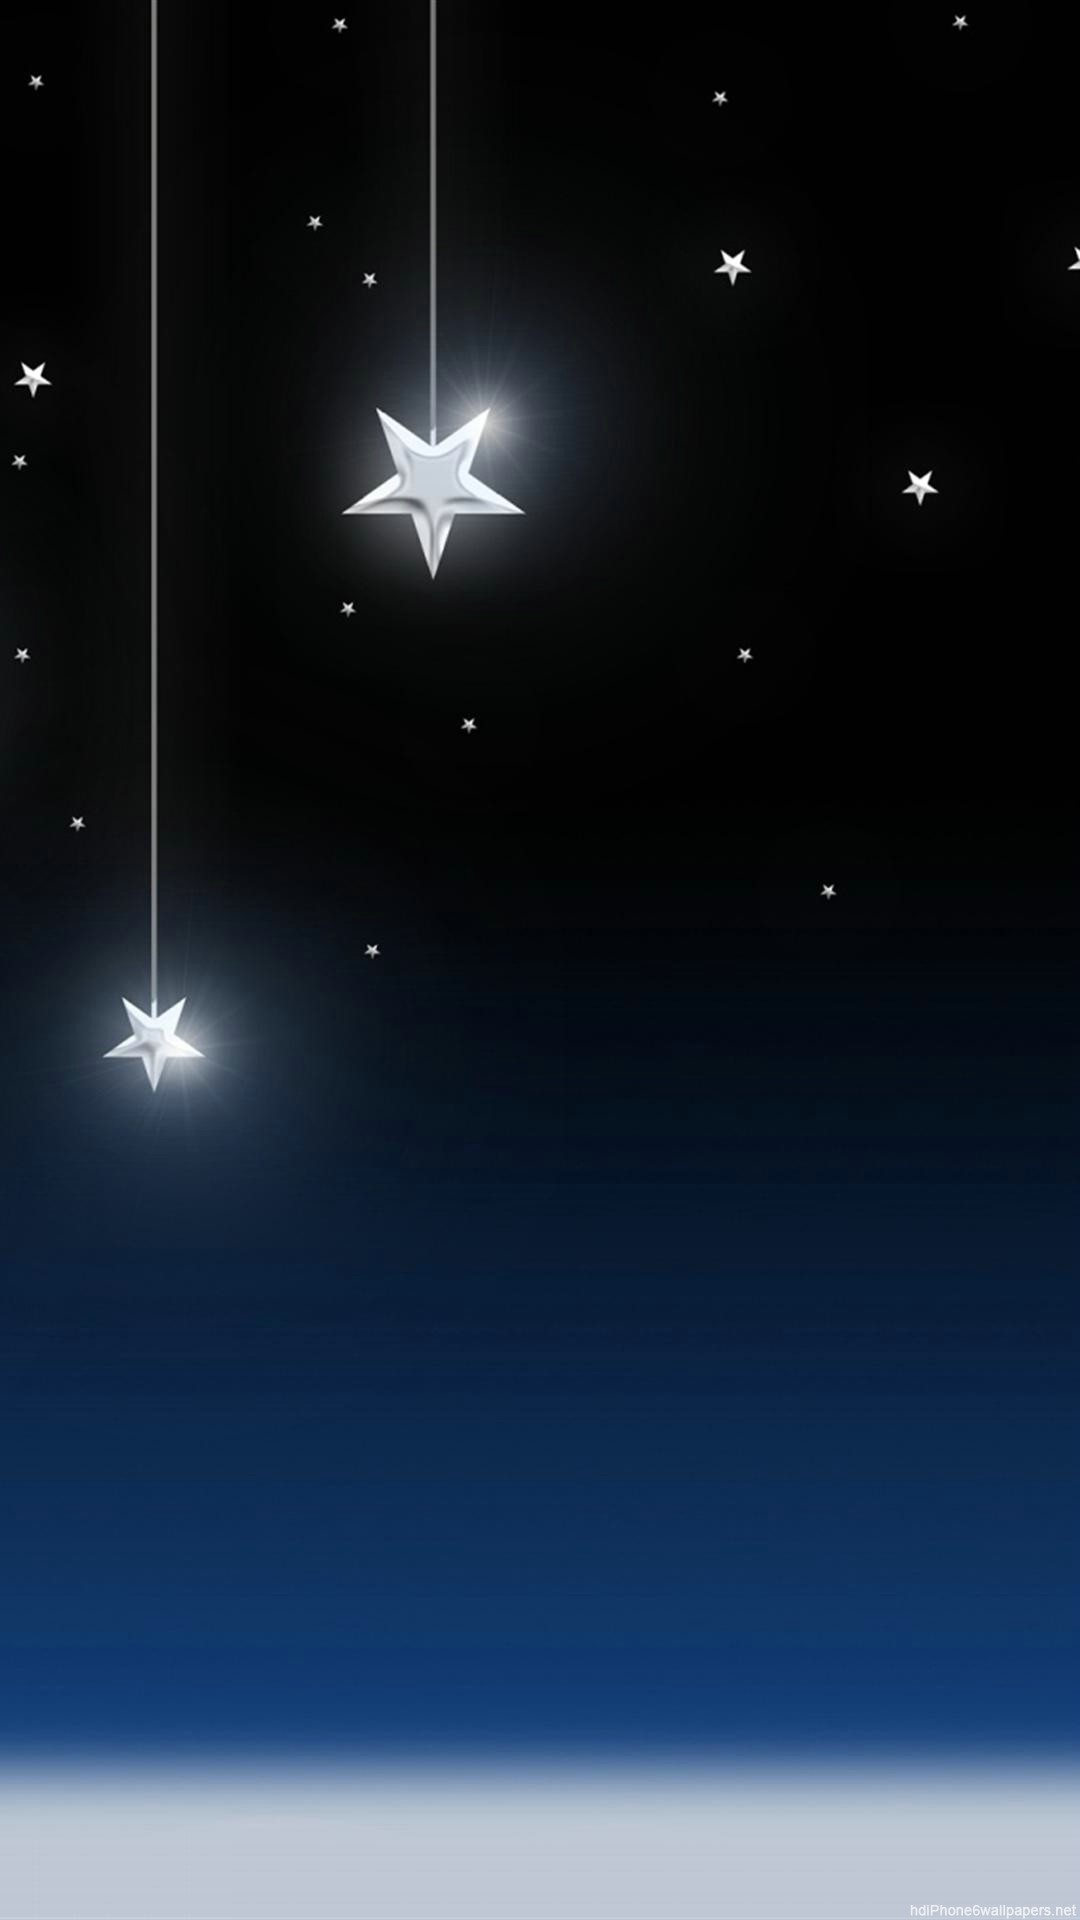 Iphone Star Wallpaper Hd 2302848 Hd Wallpaper